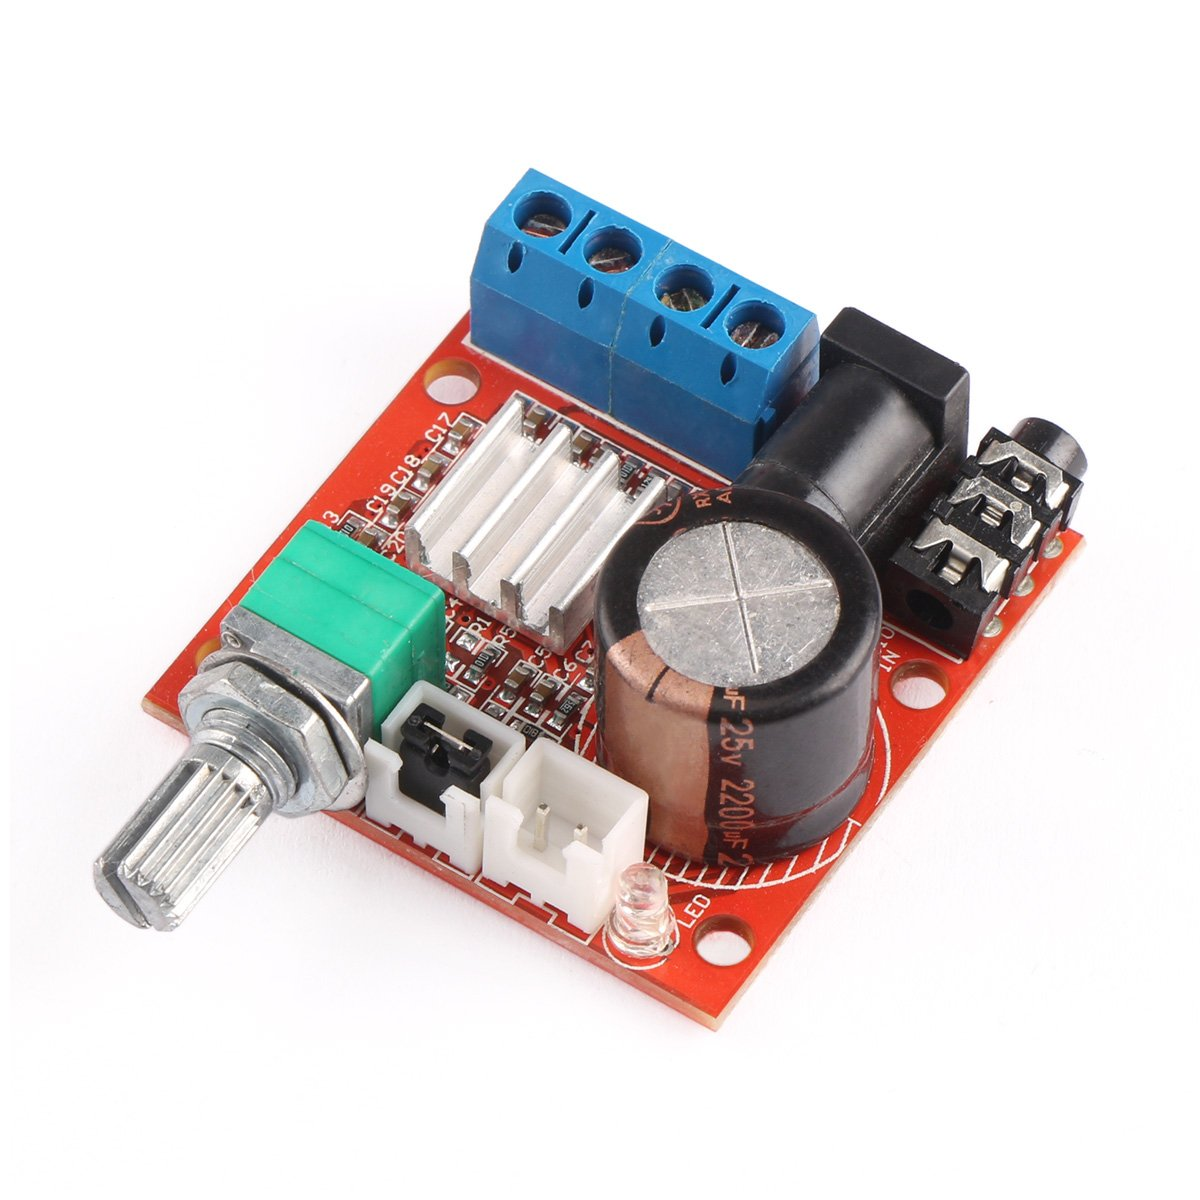 DROK Mini Stereo AMP Audio Amplify Board Digital Portable Ampli Module 10W+10W Dual Channel Amplifier Class-D 12V DC 090151